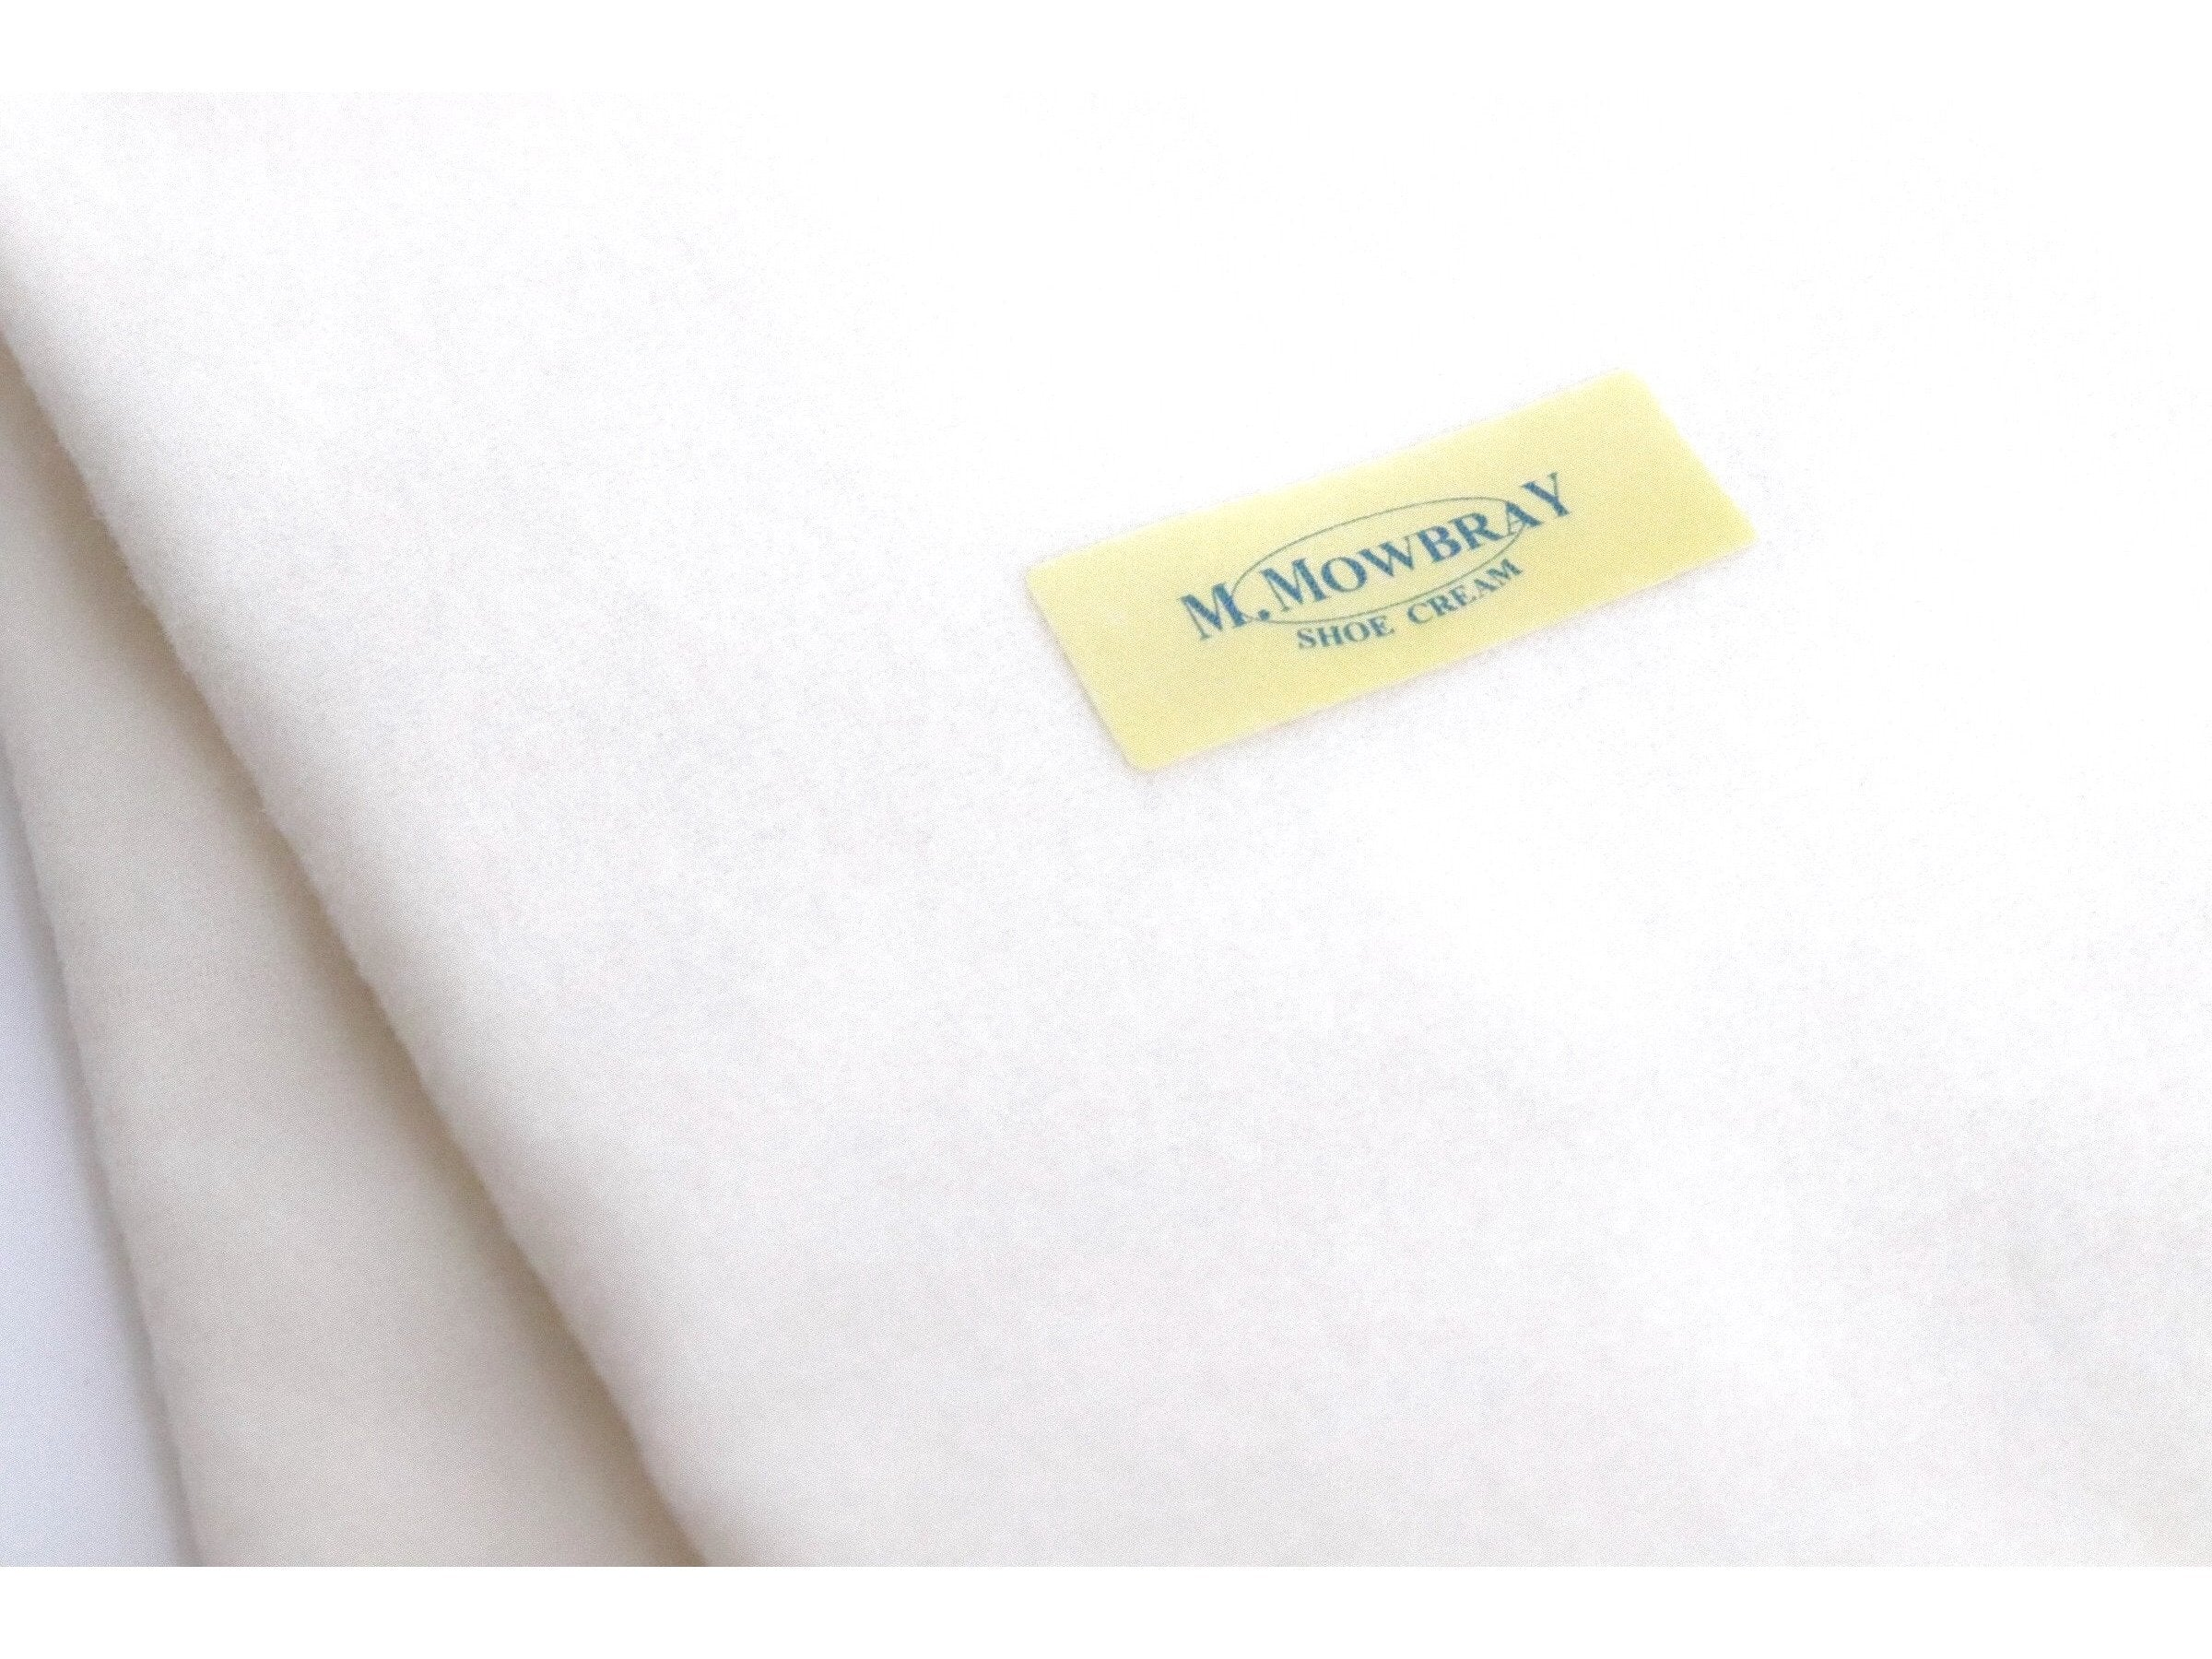 M.Mowbray Polishing Cloth